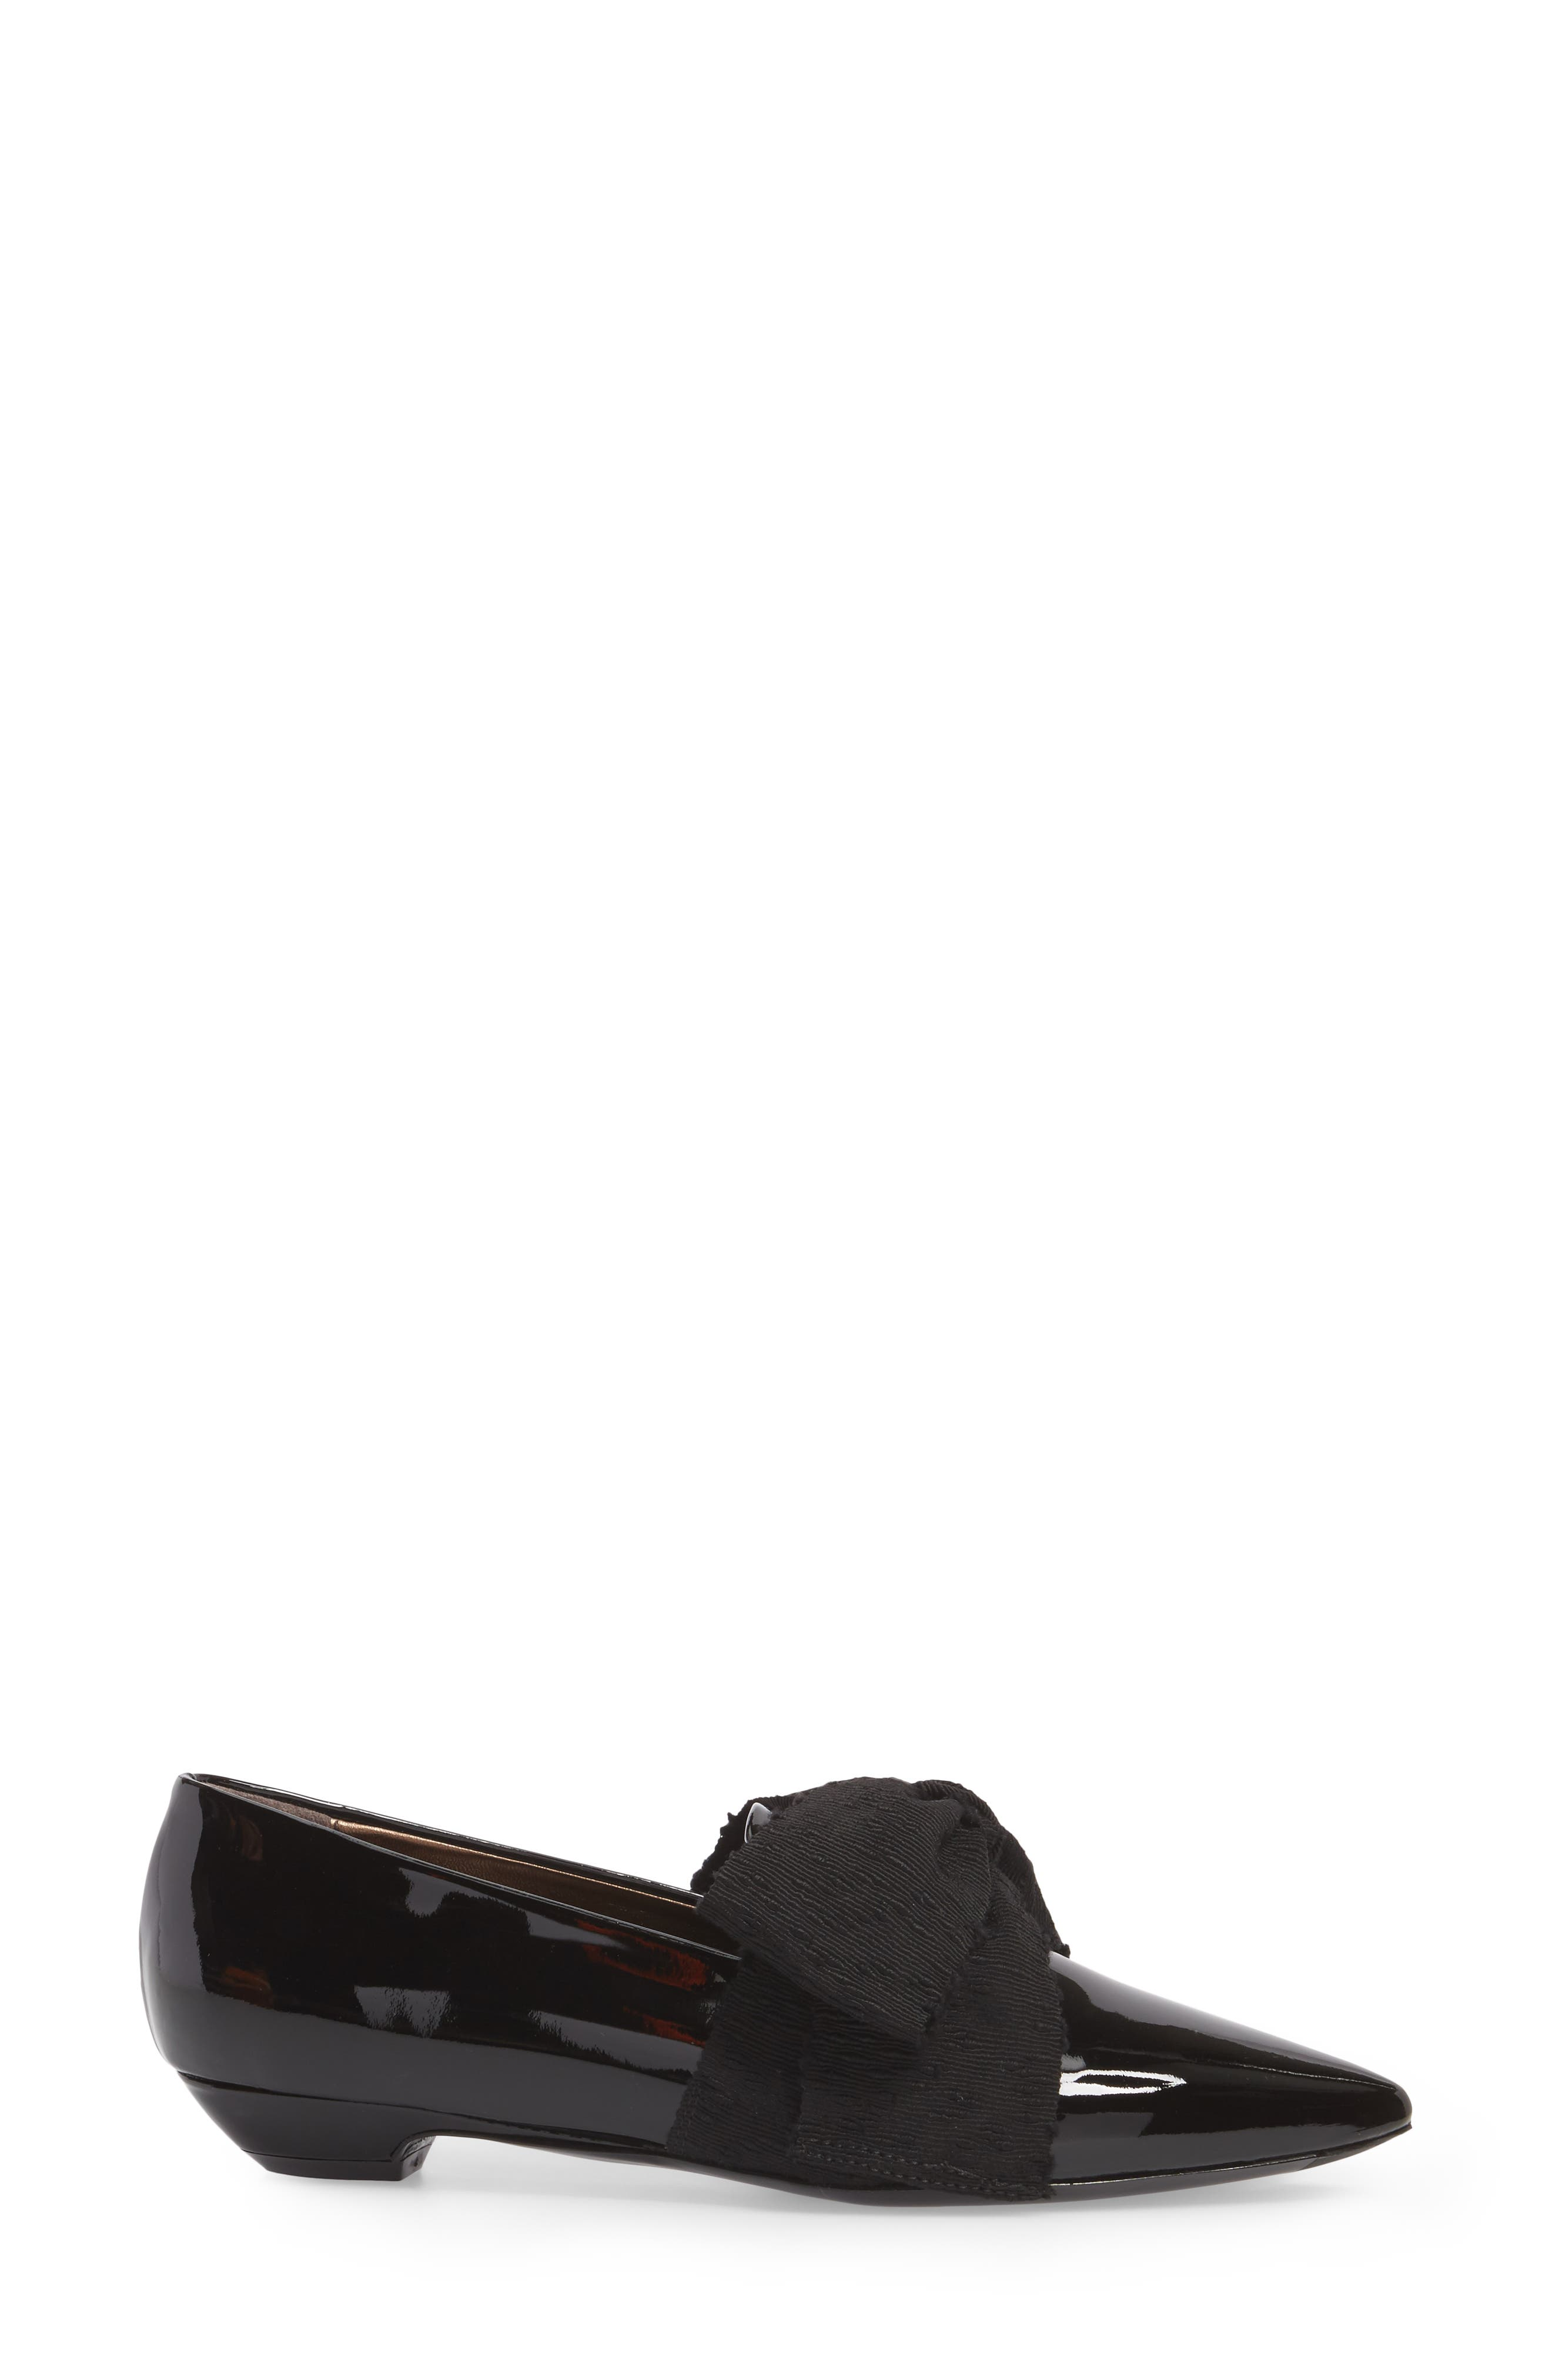 Maggie Bow Loafer,                             Alternate thumbnail 3, color,                             001